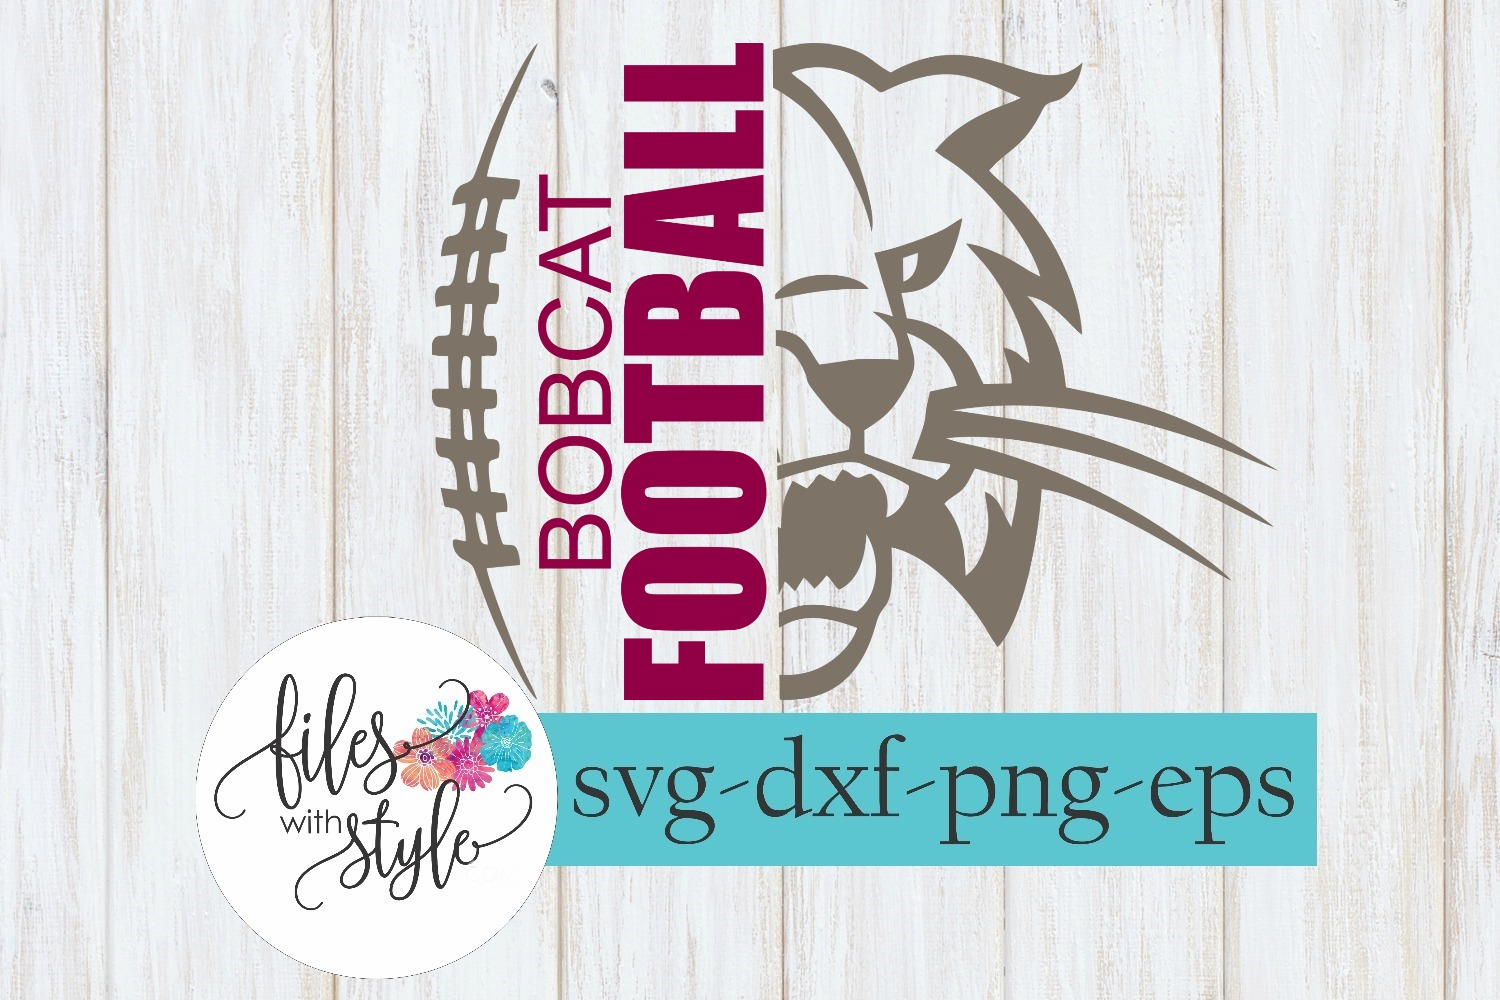 Bobcat Football School Mascot SVG Cutting File example image 1